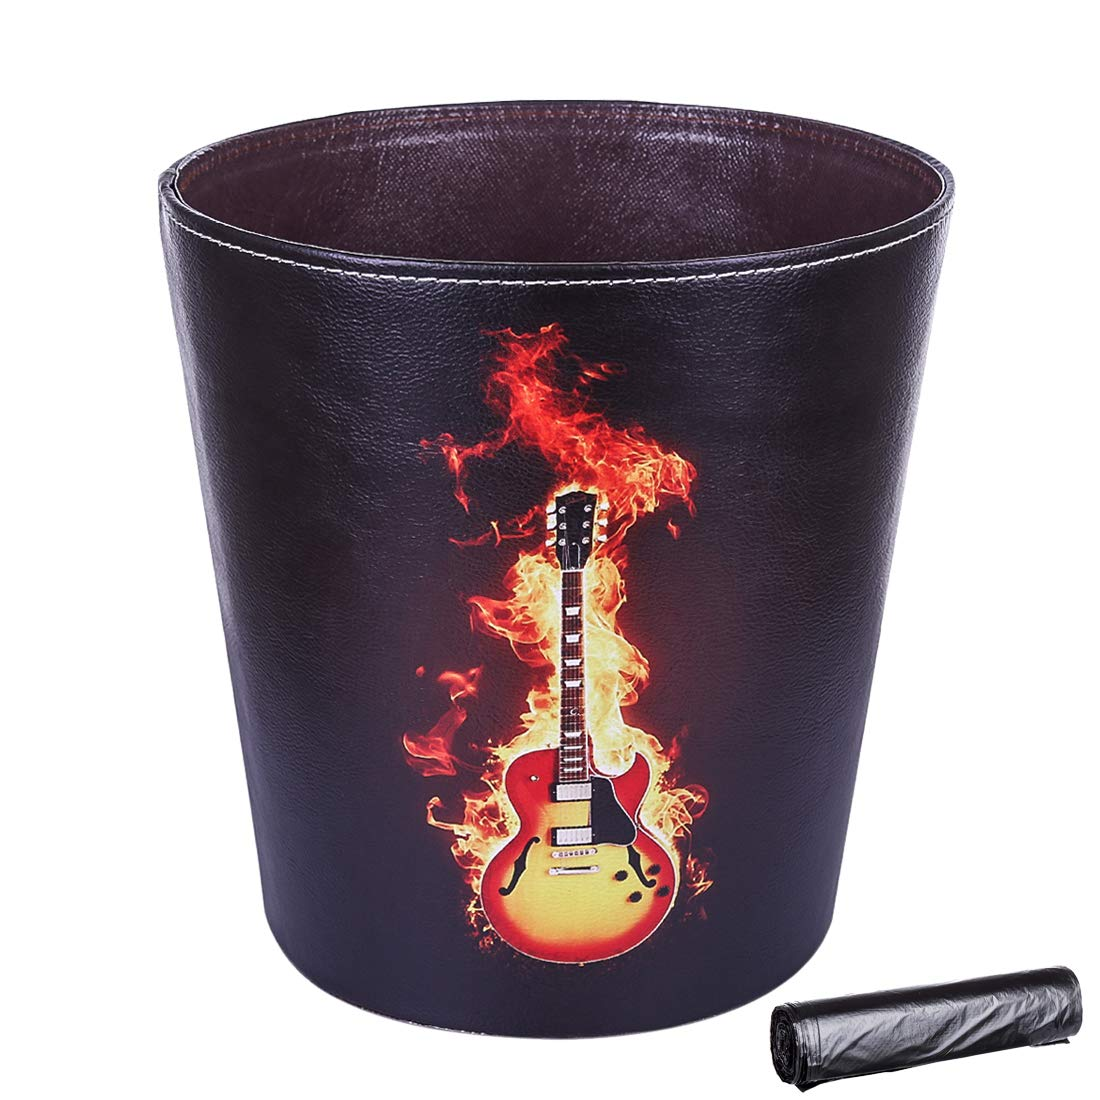 Guitar RuiyiF Deskside Waste Basket with 30PCS Trash Bags Farmhouse Trash Can for Kids Bedroom Bathroom Garbage Can Without Lid Decorative Waste Bin Kitchen Recycling Bin